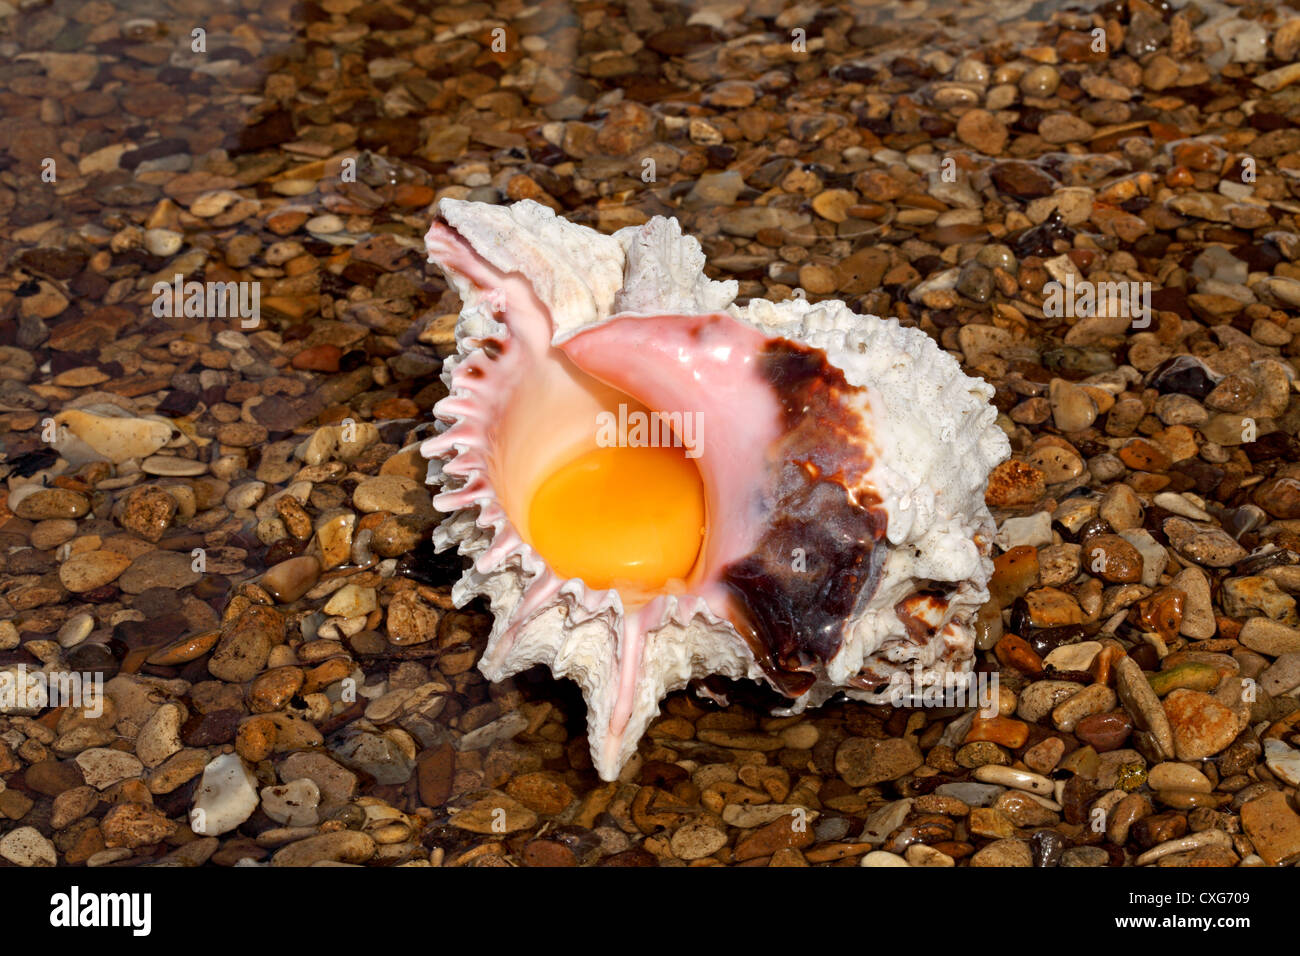 Eggshell or seafood? A concept image of an egg yolk in a shell standing in shallow water on a pebble beach - Stock Image